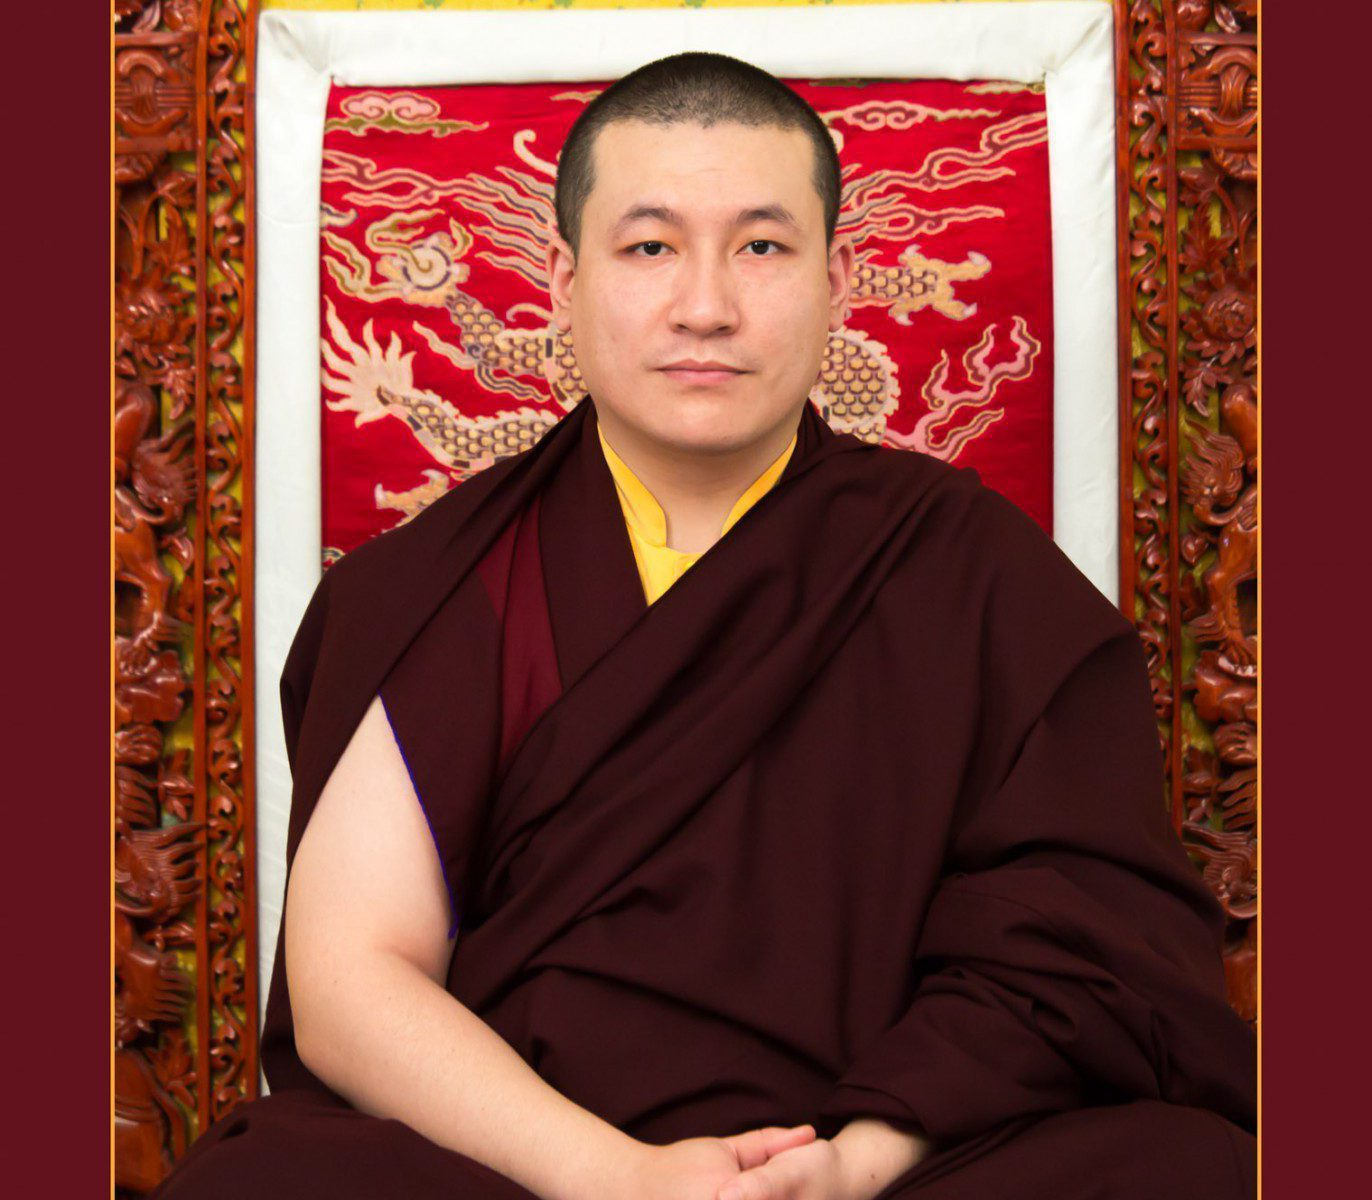 Thaye Dorje, His Holiness the 17th Gyalwa Karmapa Photo: Thule Jug